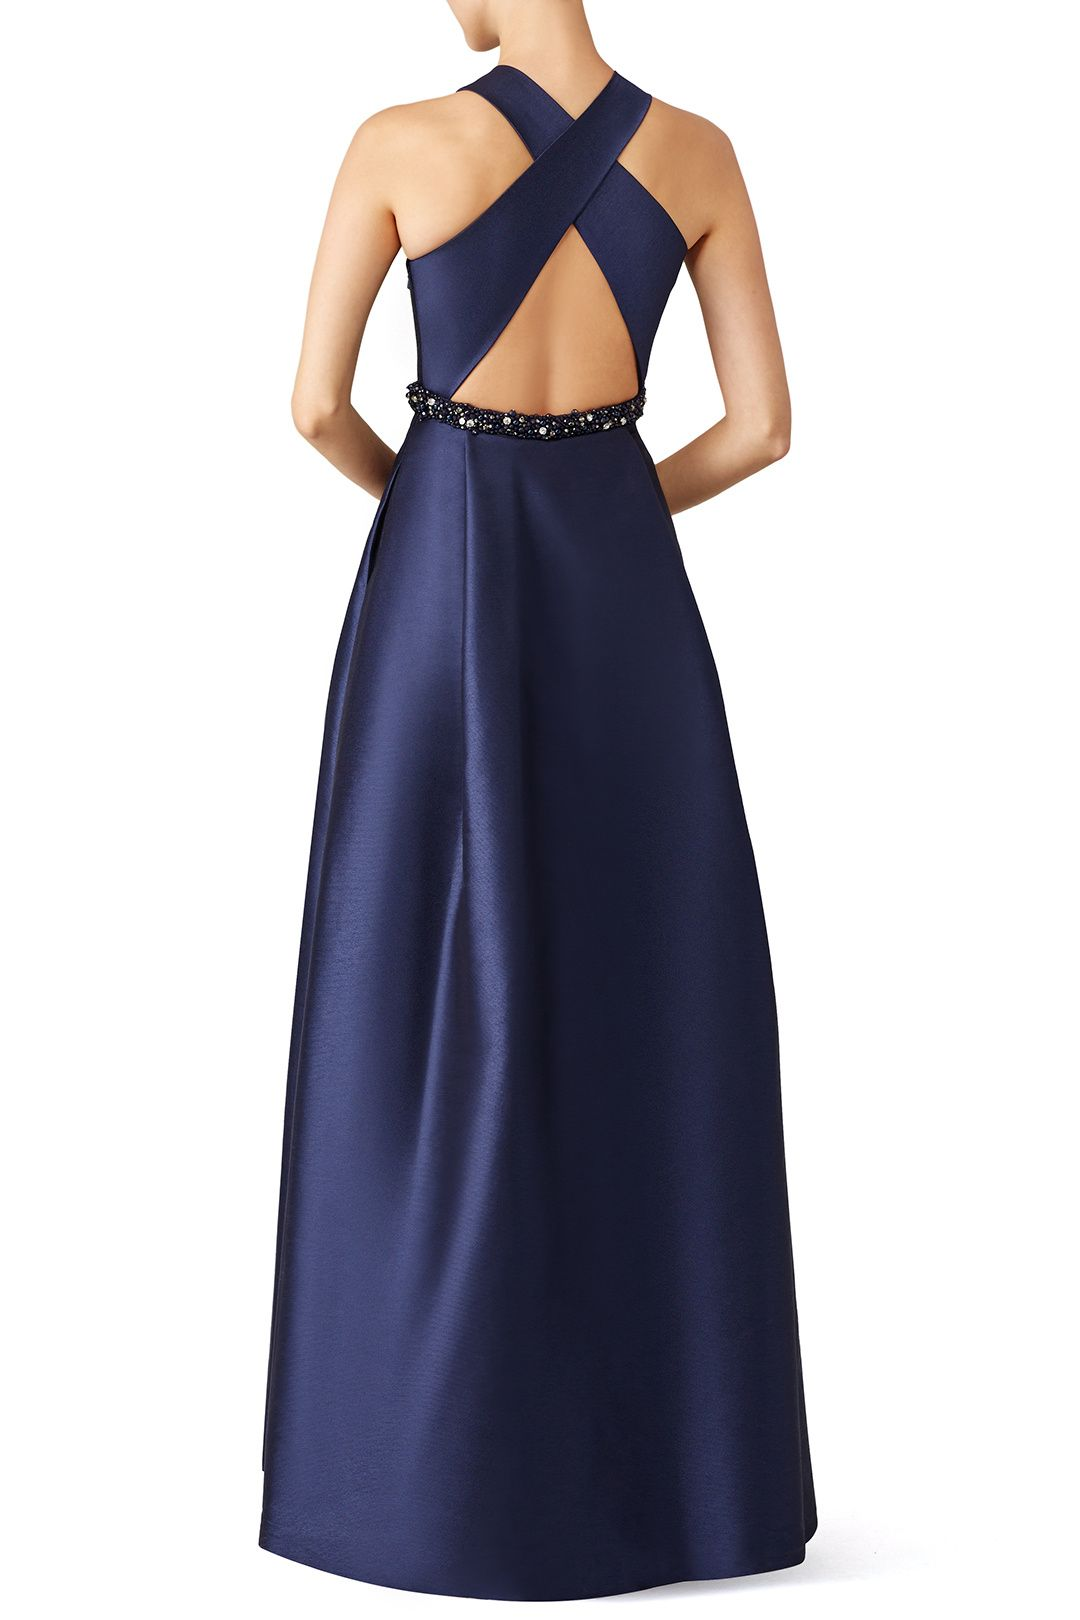 Navy Jadore Gown by ML Monique Lhuillier for $95 | Rent the Runway ...